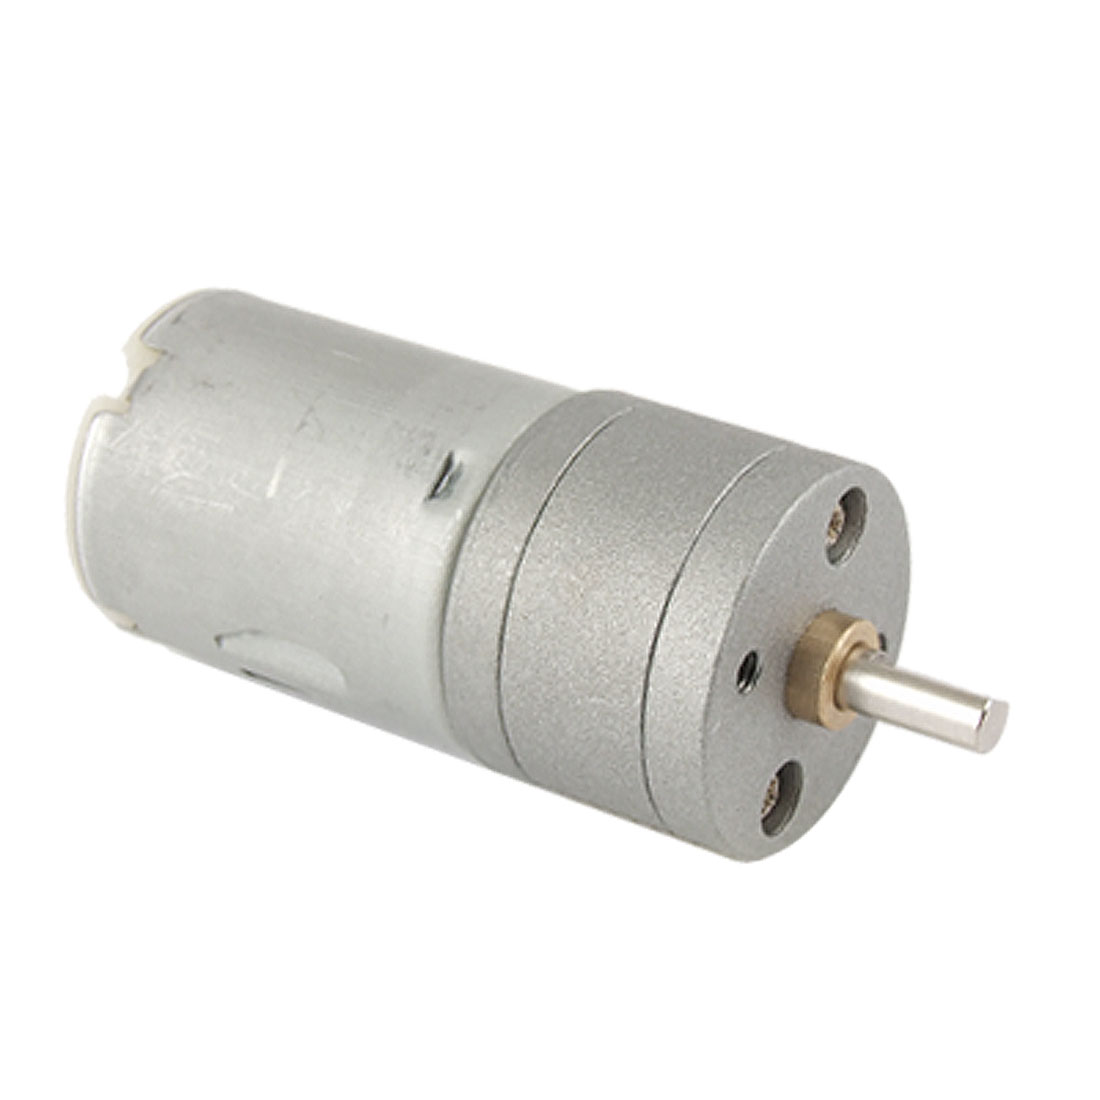 DC12V 40-50mA 1000RPM 25mm Dia Gearbox Electric DC Geared Motor